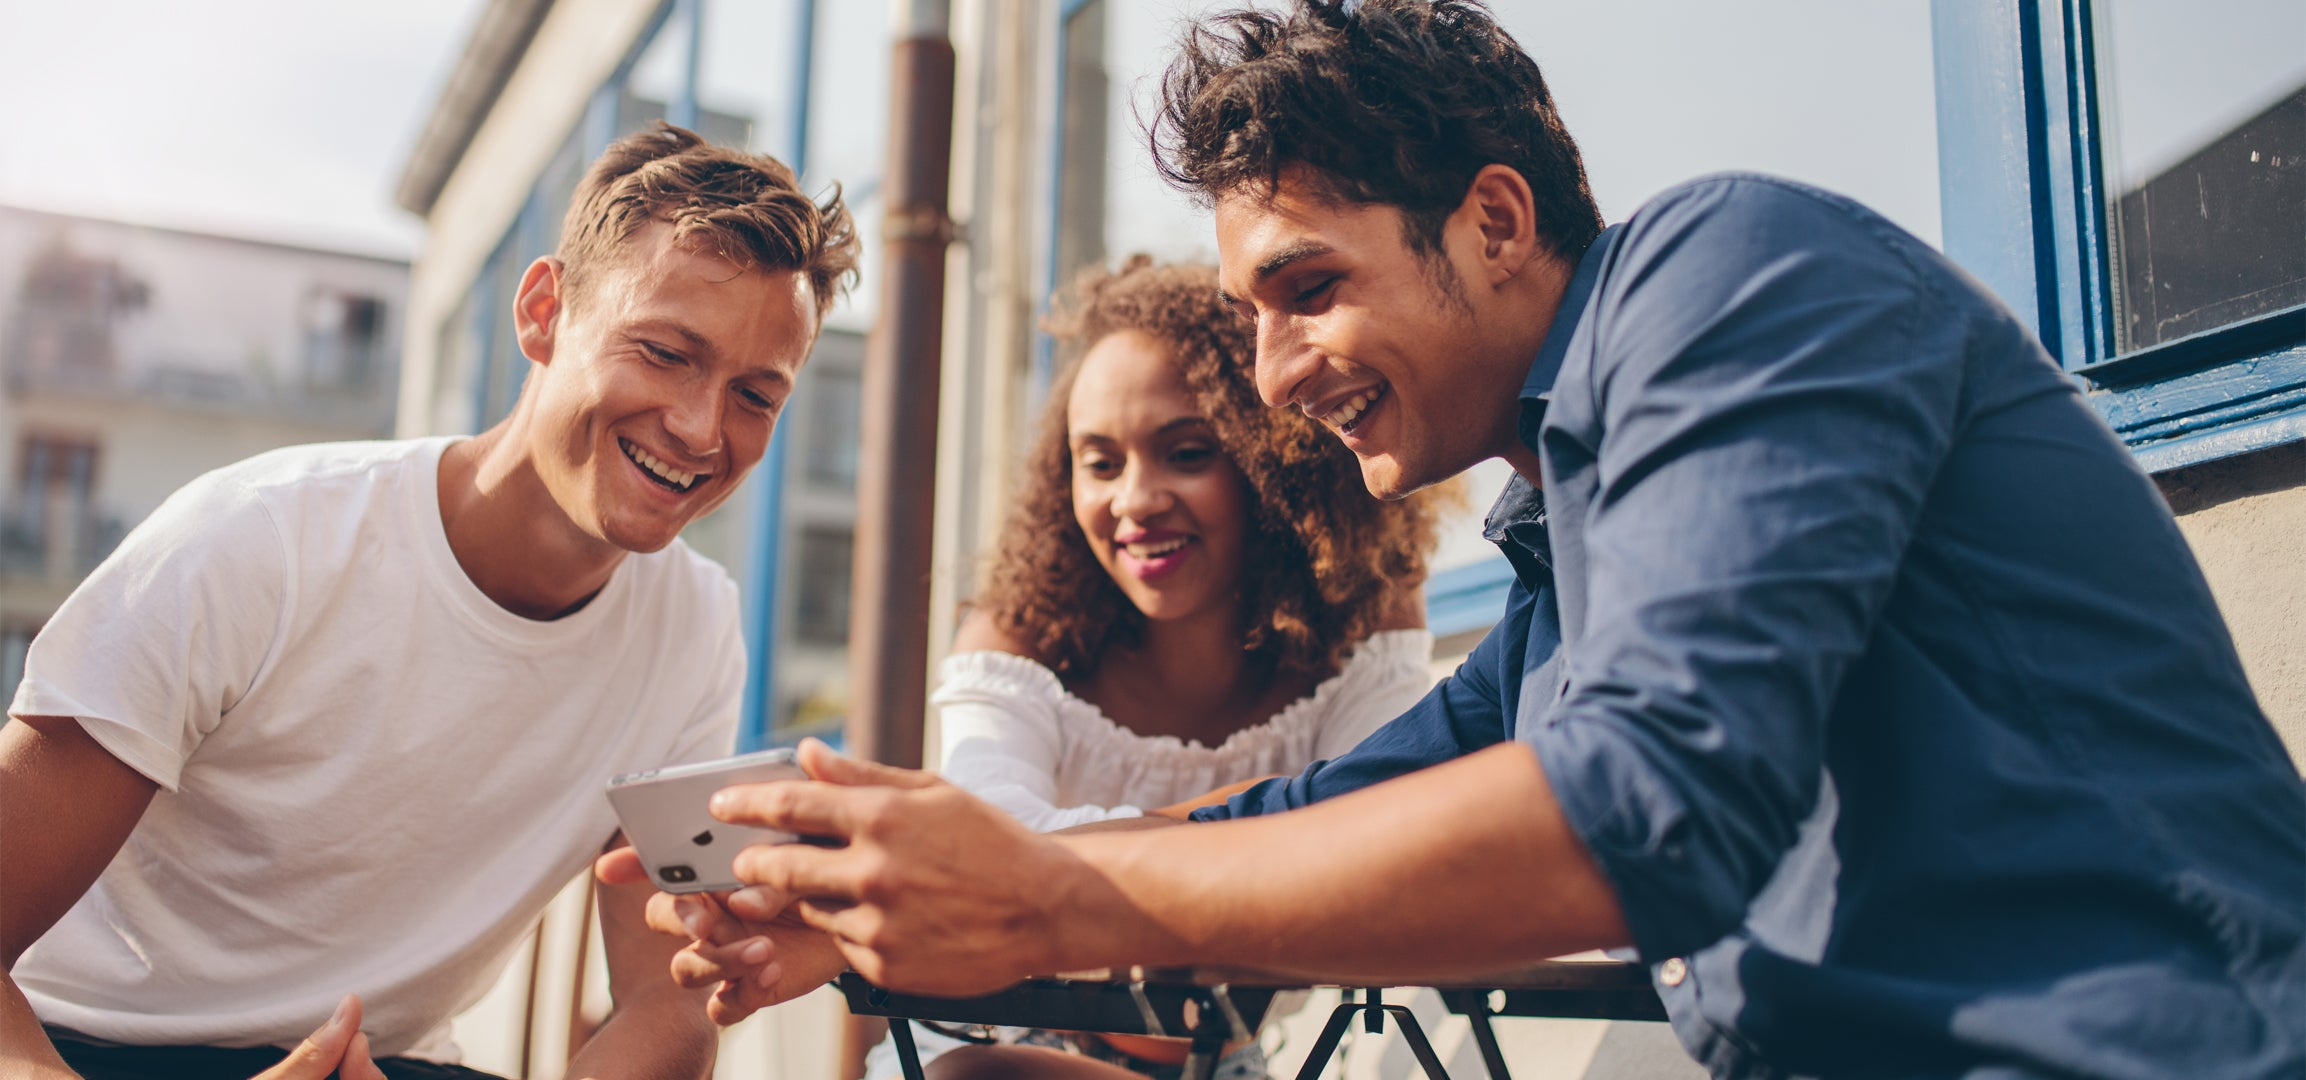 Three people looking at an iPhone with smiles